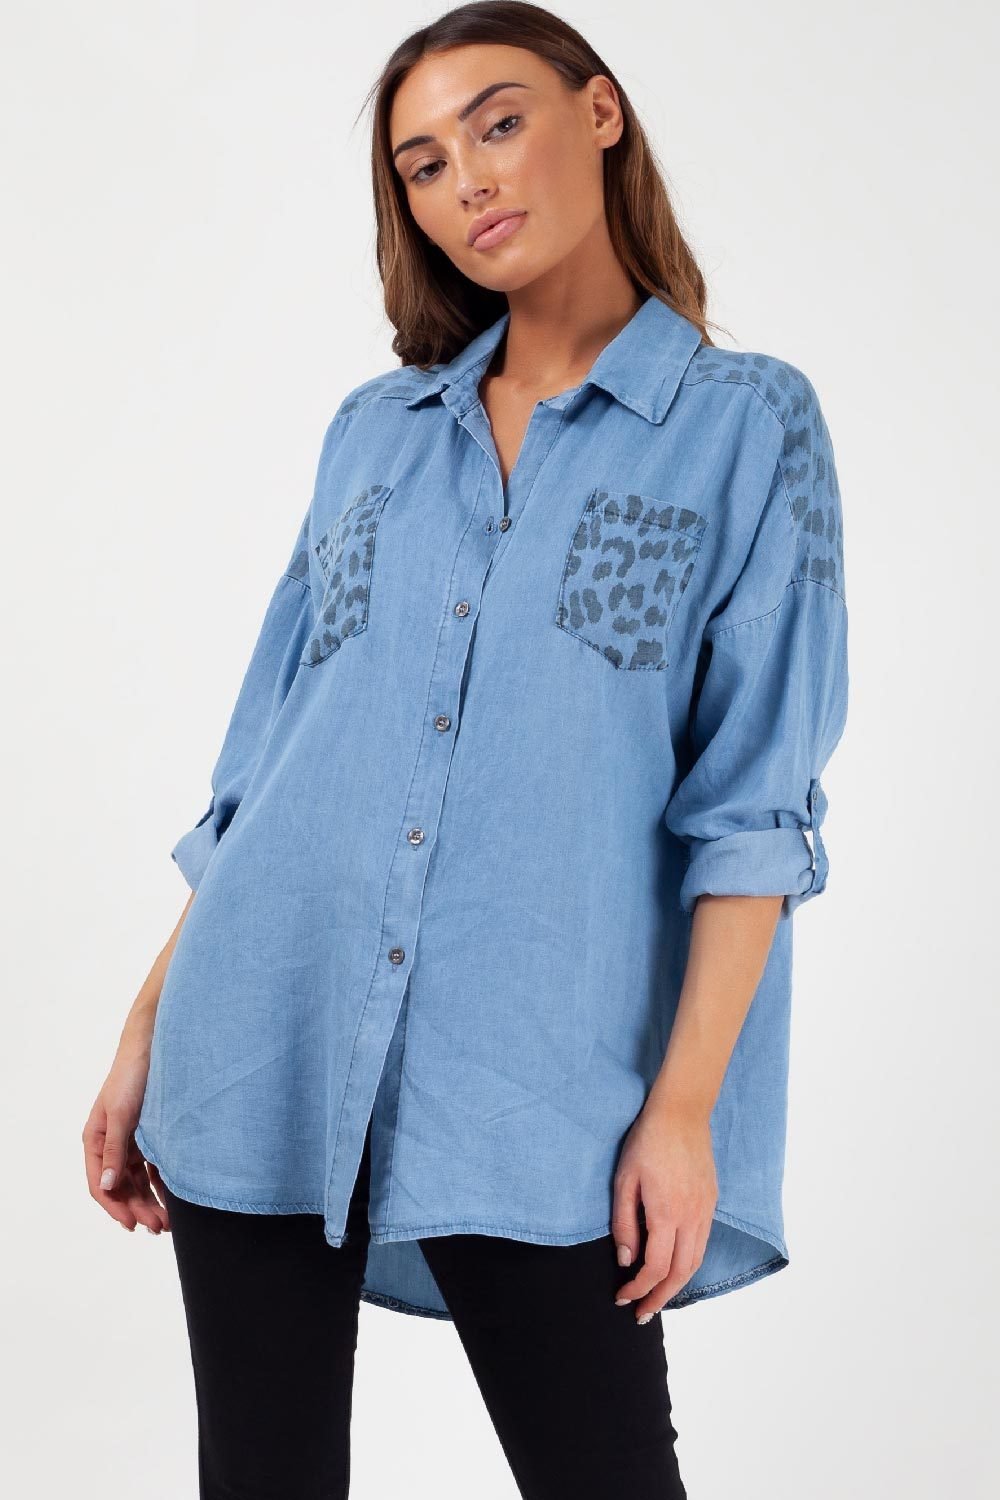 womens oversized denim shirt styledup fashion